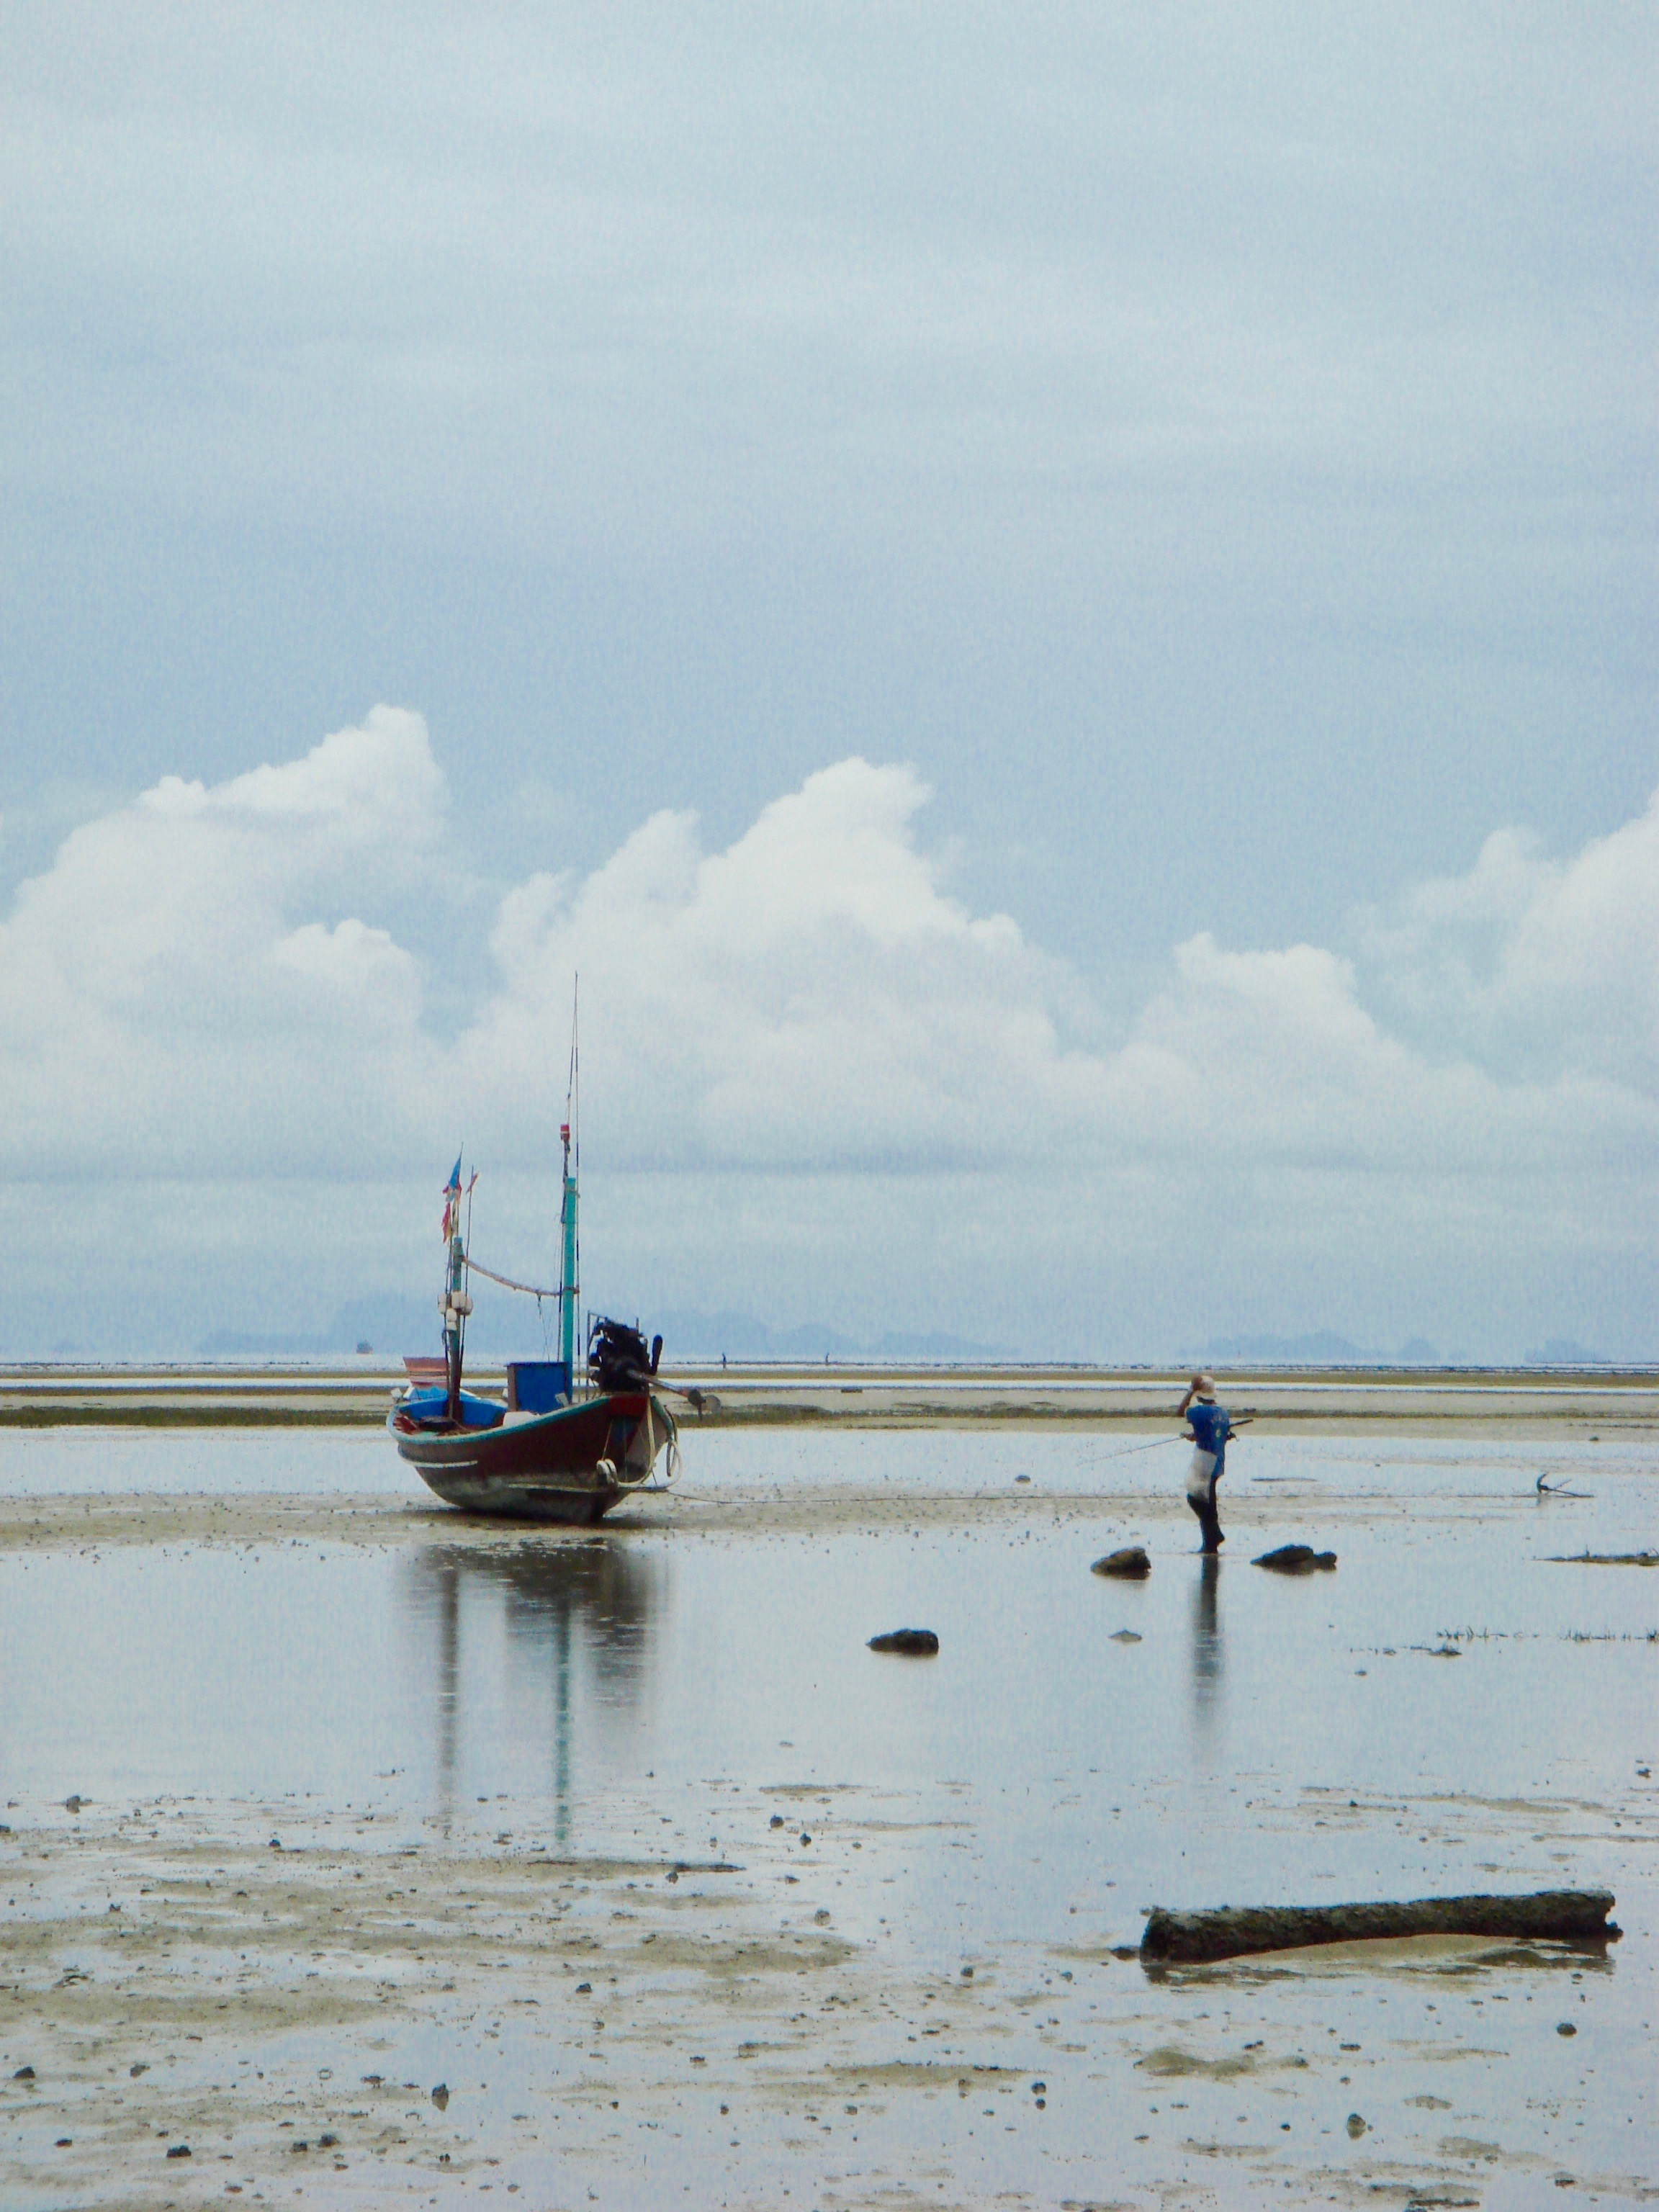 A fisherman and his boat at low tide on Ko Pha Ngan, Thailand